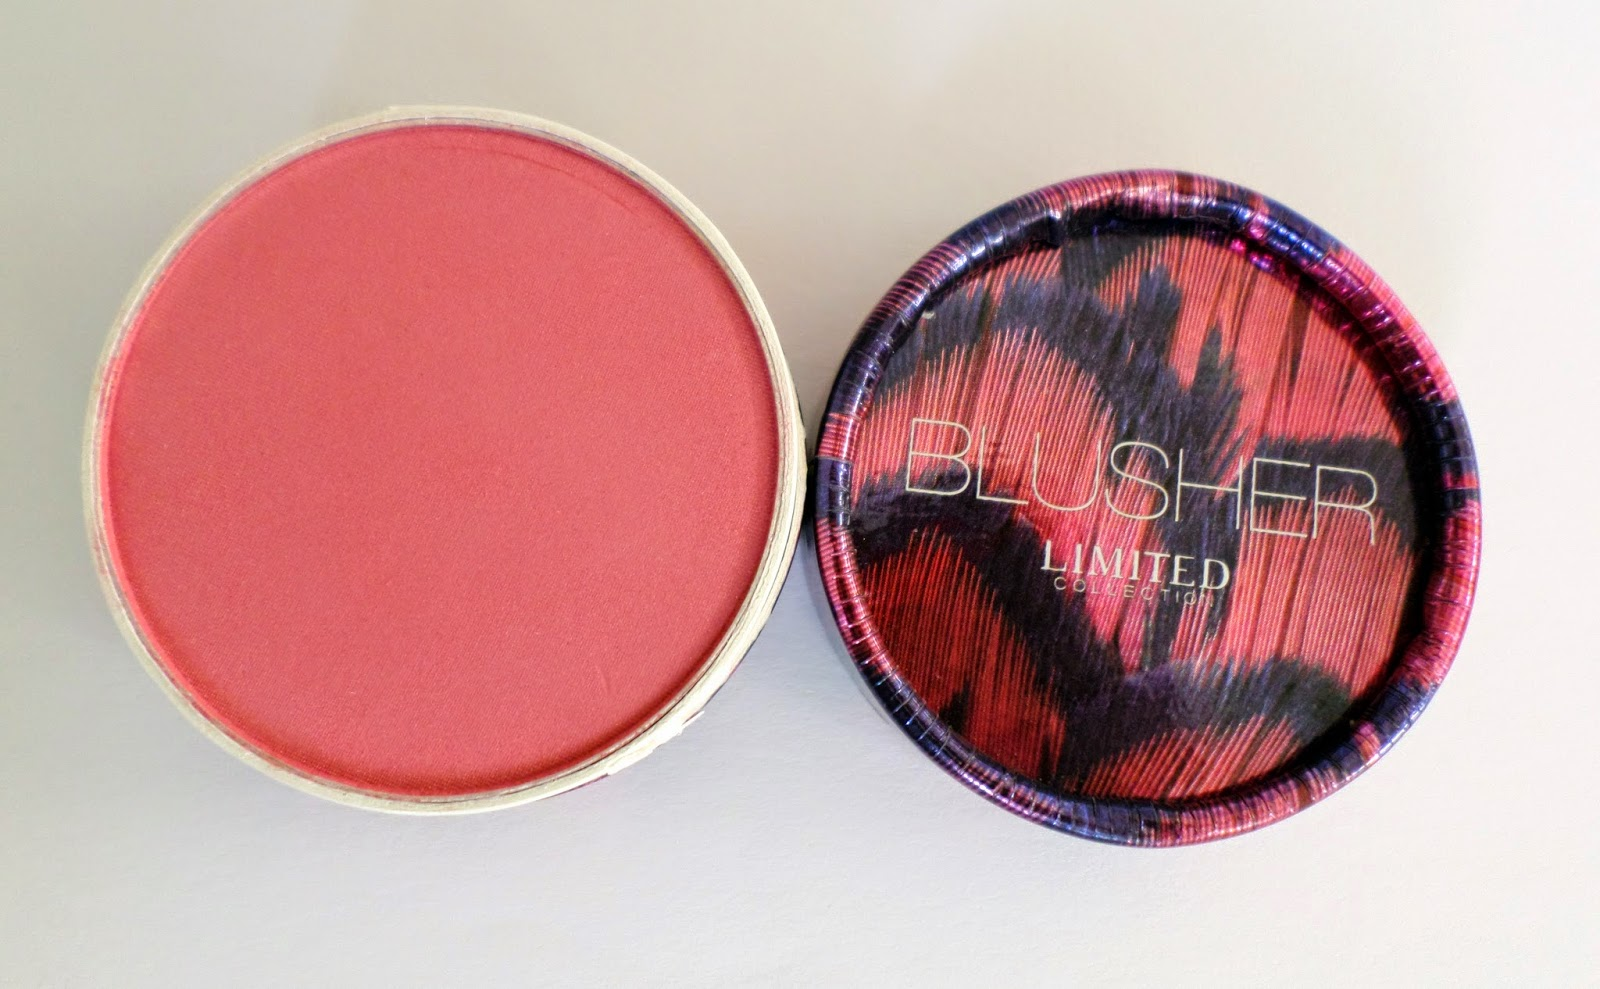 Marks & Spencer Limited Collection Blush in Berry (F6)